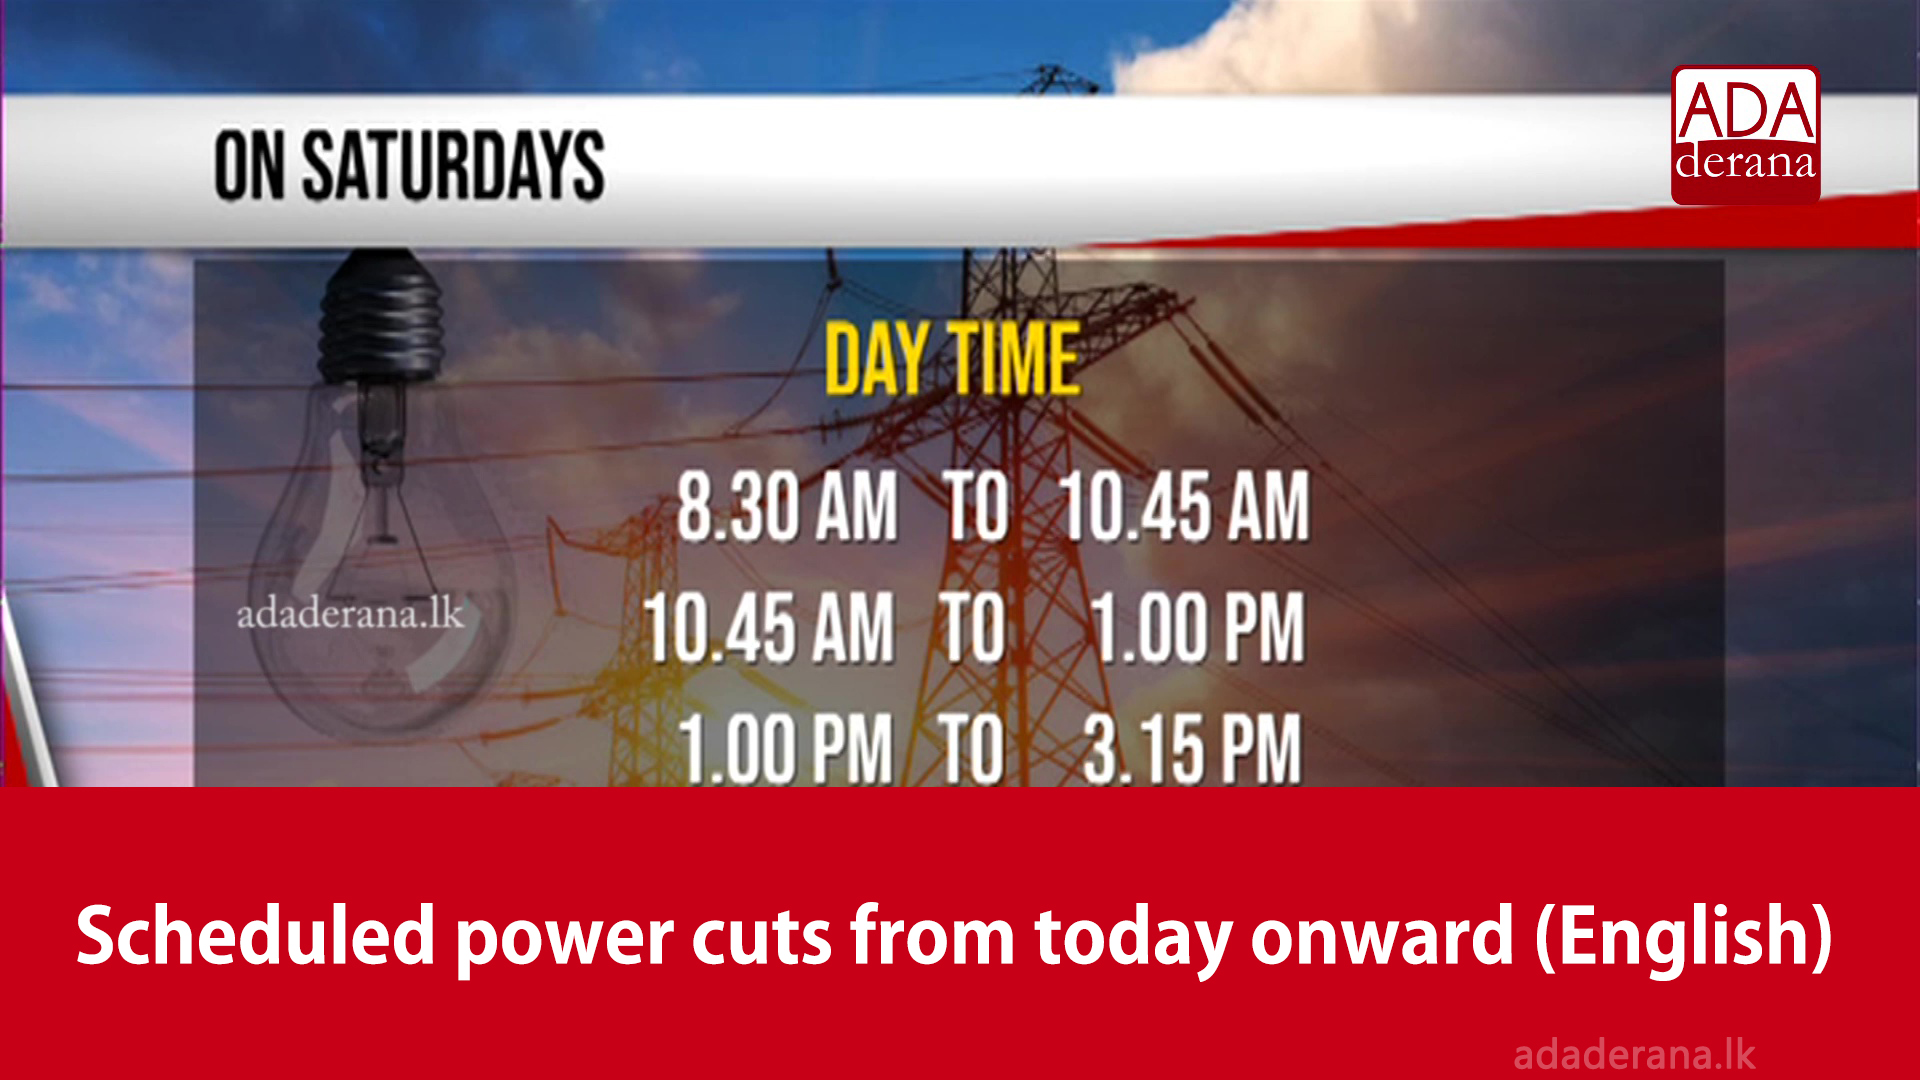 Scheduled power cuts from today onward (English)